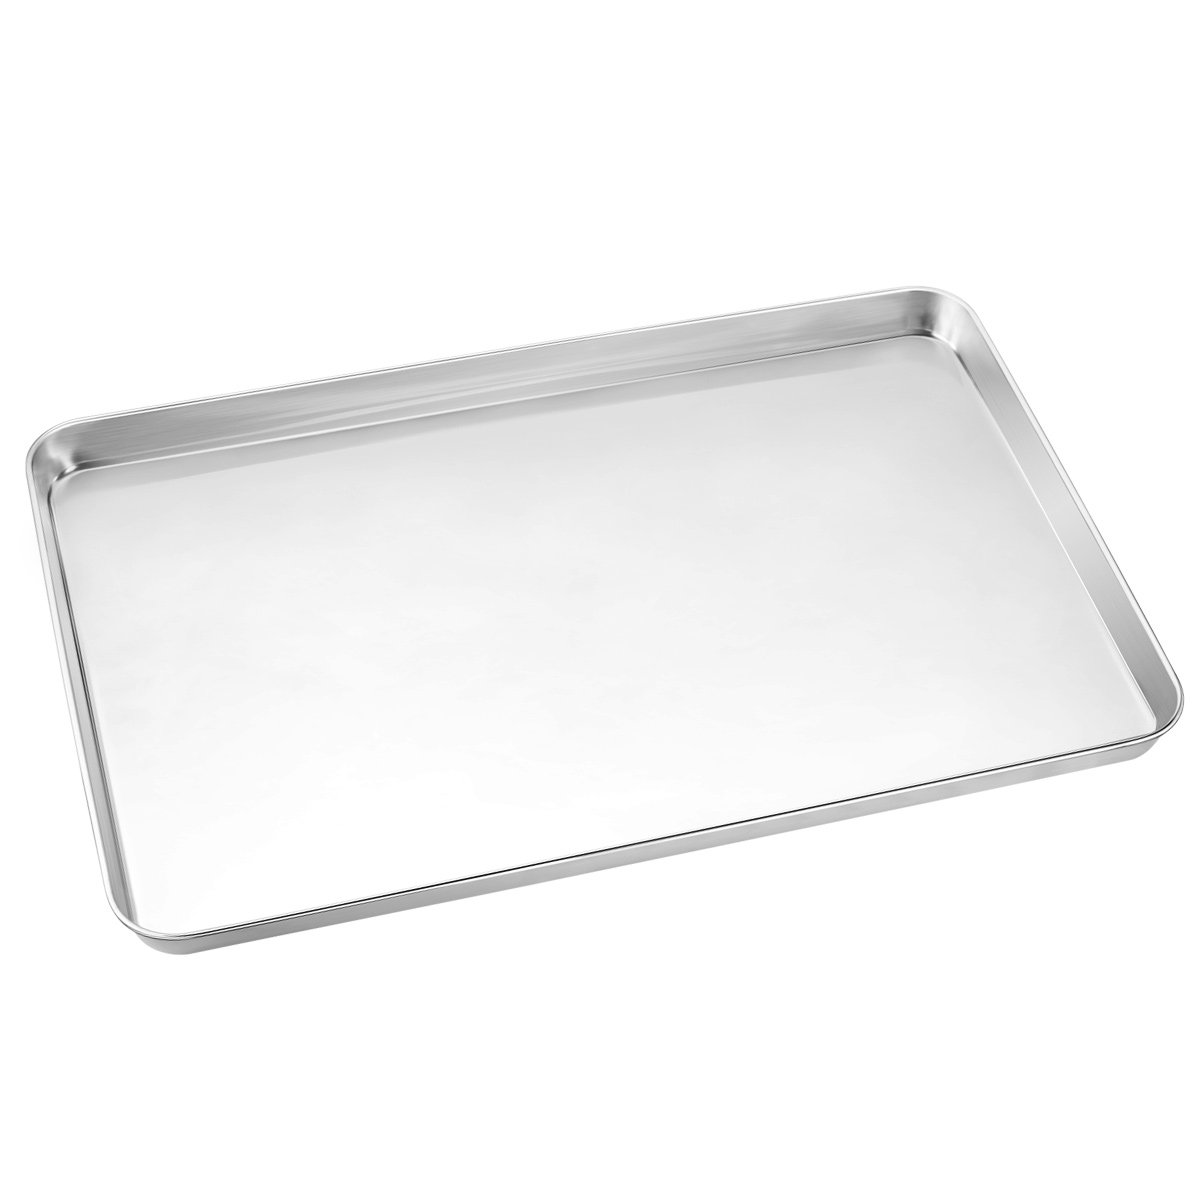 Large Baking Sheets, HKJ Chef Baking Pans & Stainless Steel Cookie Sheets & Toaster Oven Tray Pans, Rectangle Size 24L x 16W x 1H inch & Non Toxic & Healthy,Superior Mirror & Easy Clean (24inch)